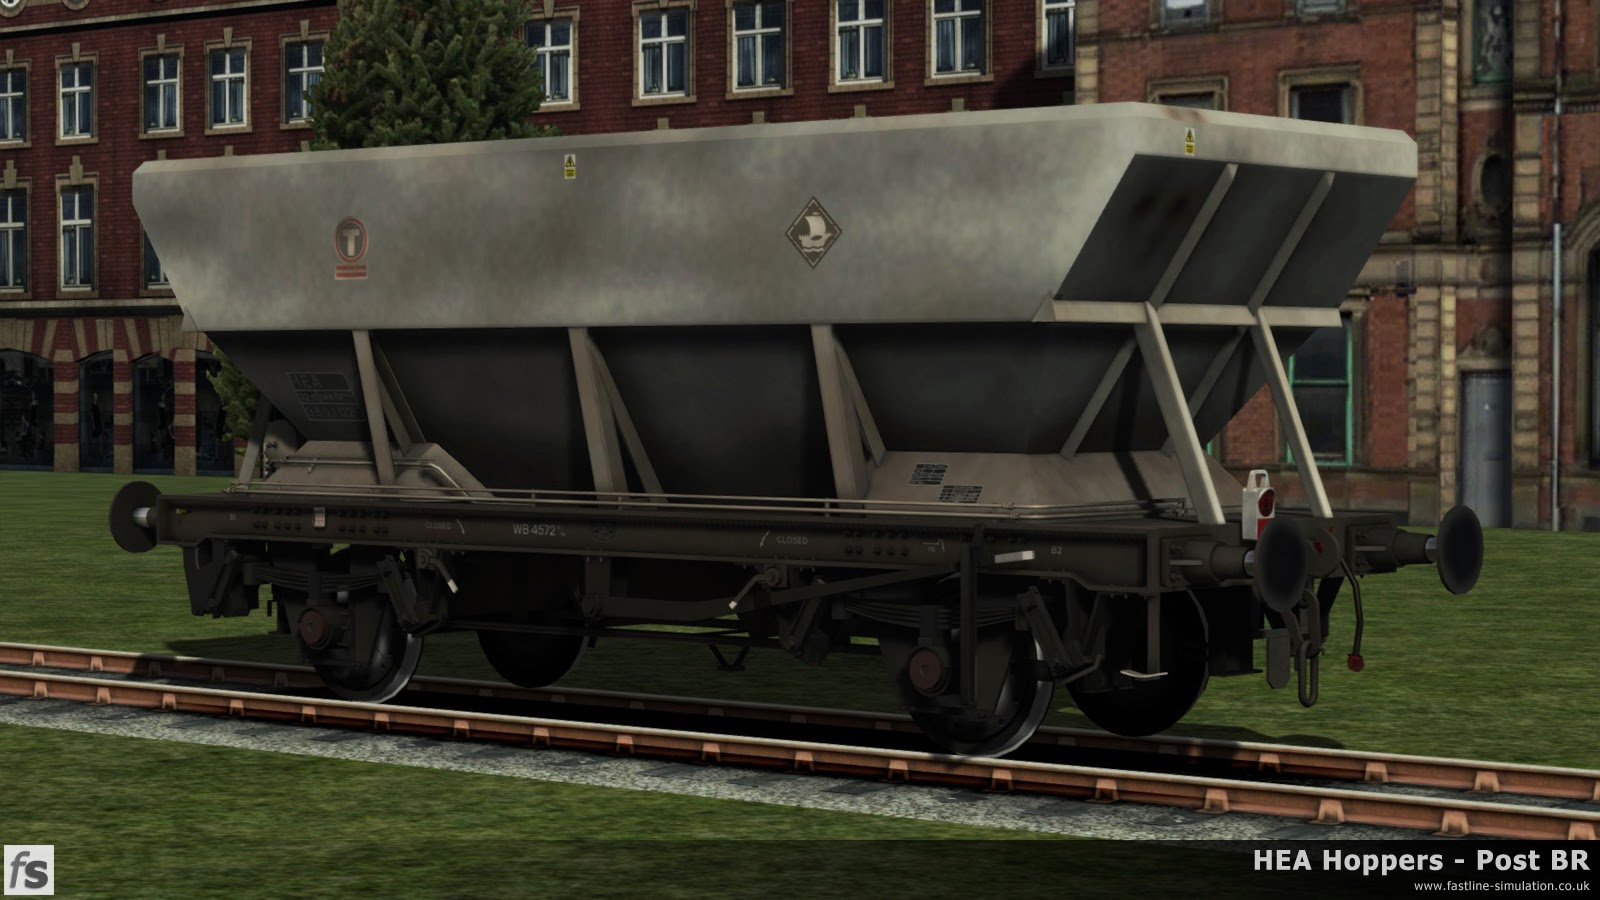 HEA Hoppers - Post BR: One of the later built HEA hoppers with the scars of having it's offset ladders removed in grimy Transrail livery and carrying a more modern tail lamp with reflective strip under development for Train Simulator 2014.